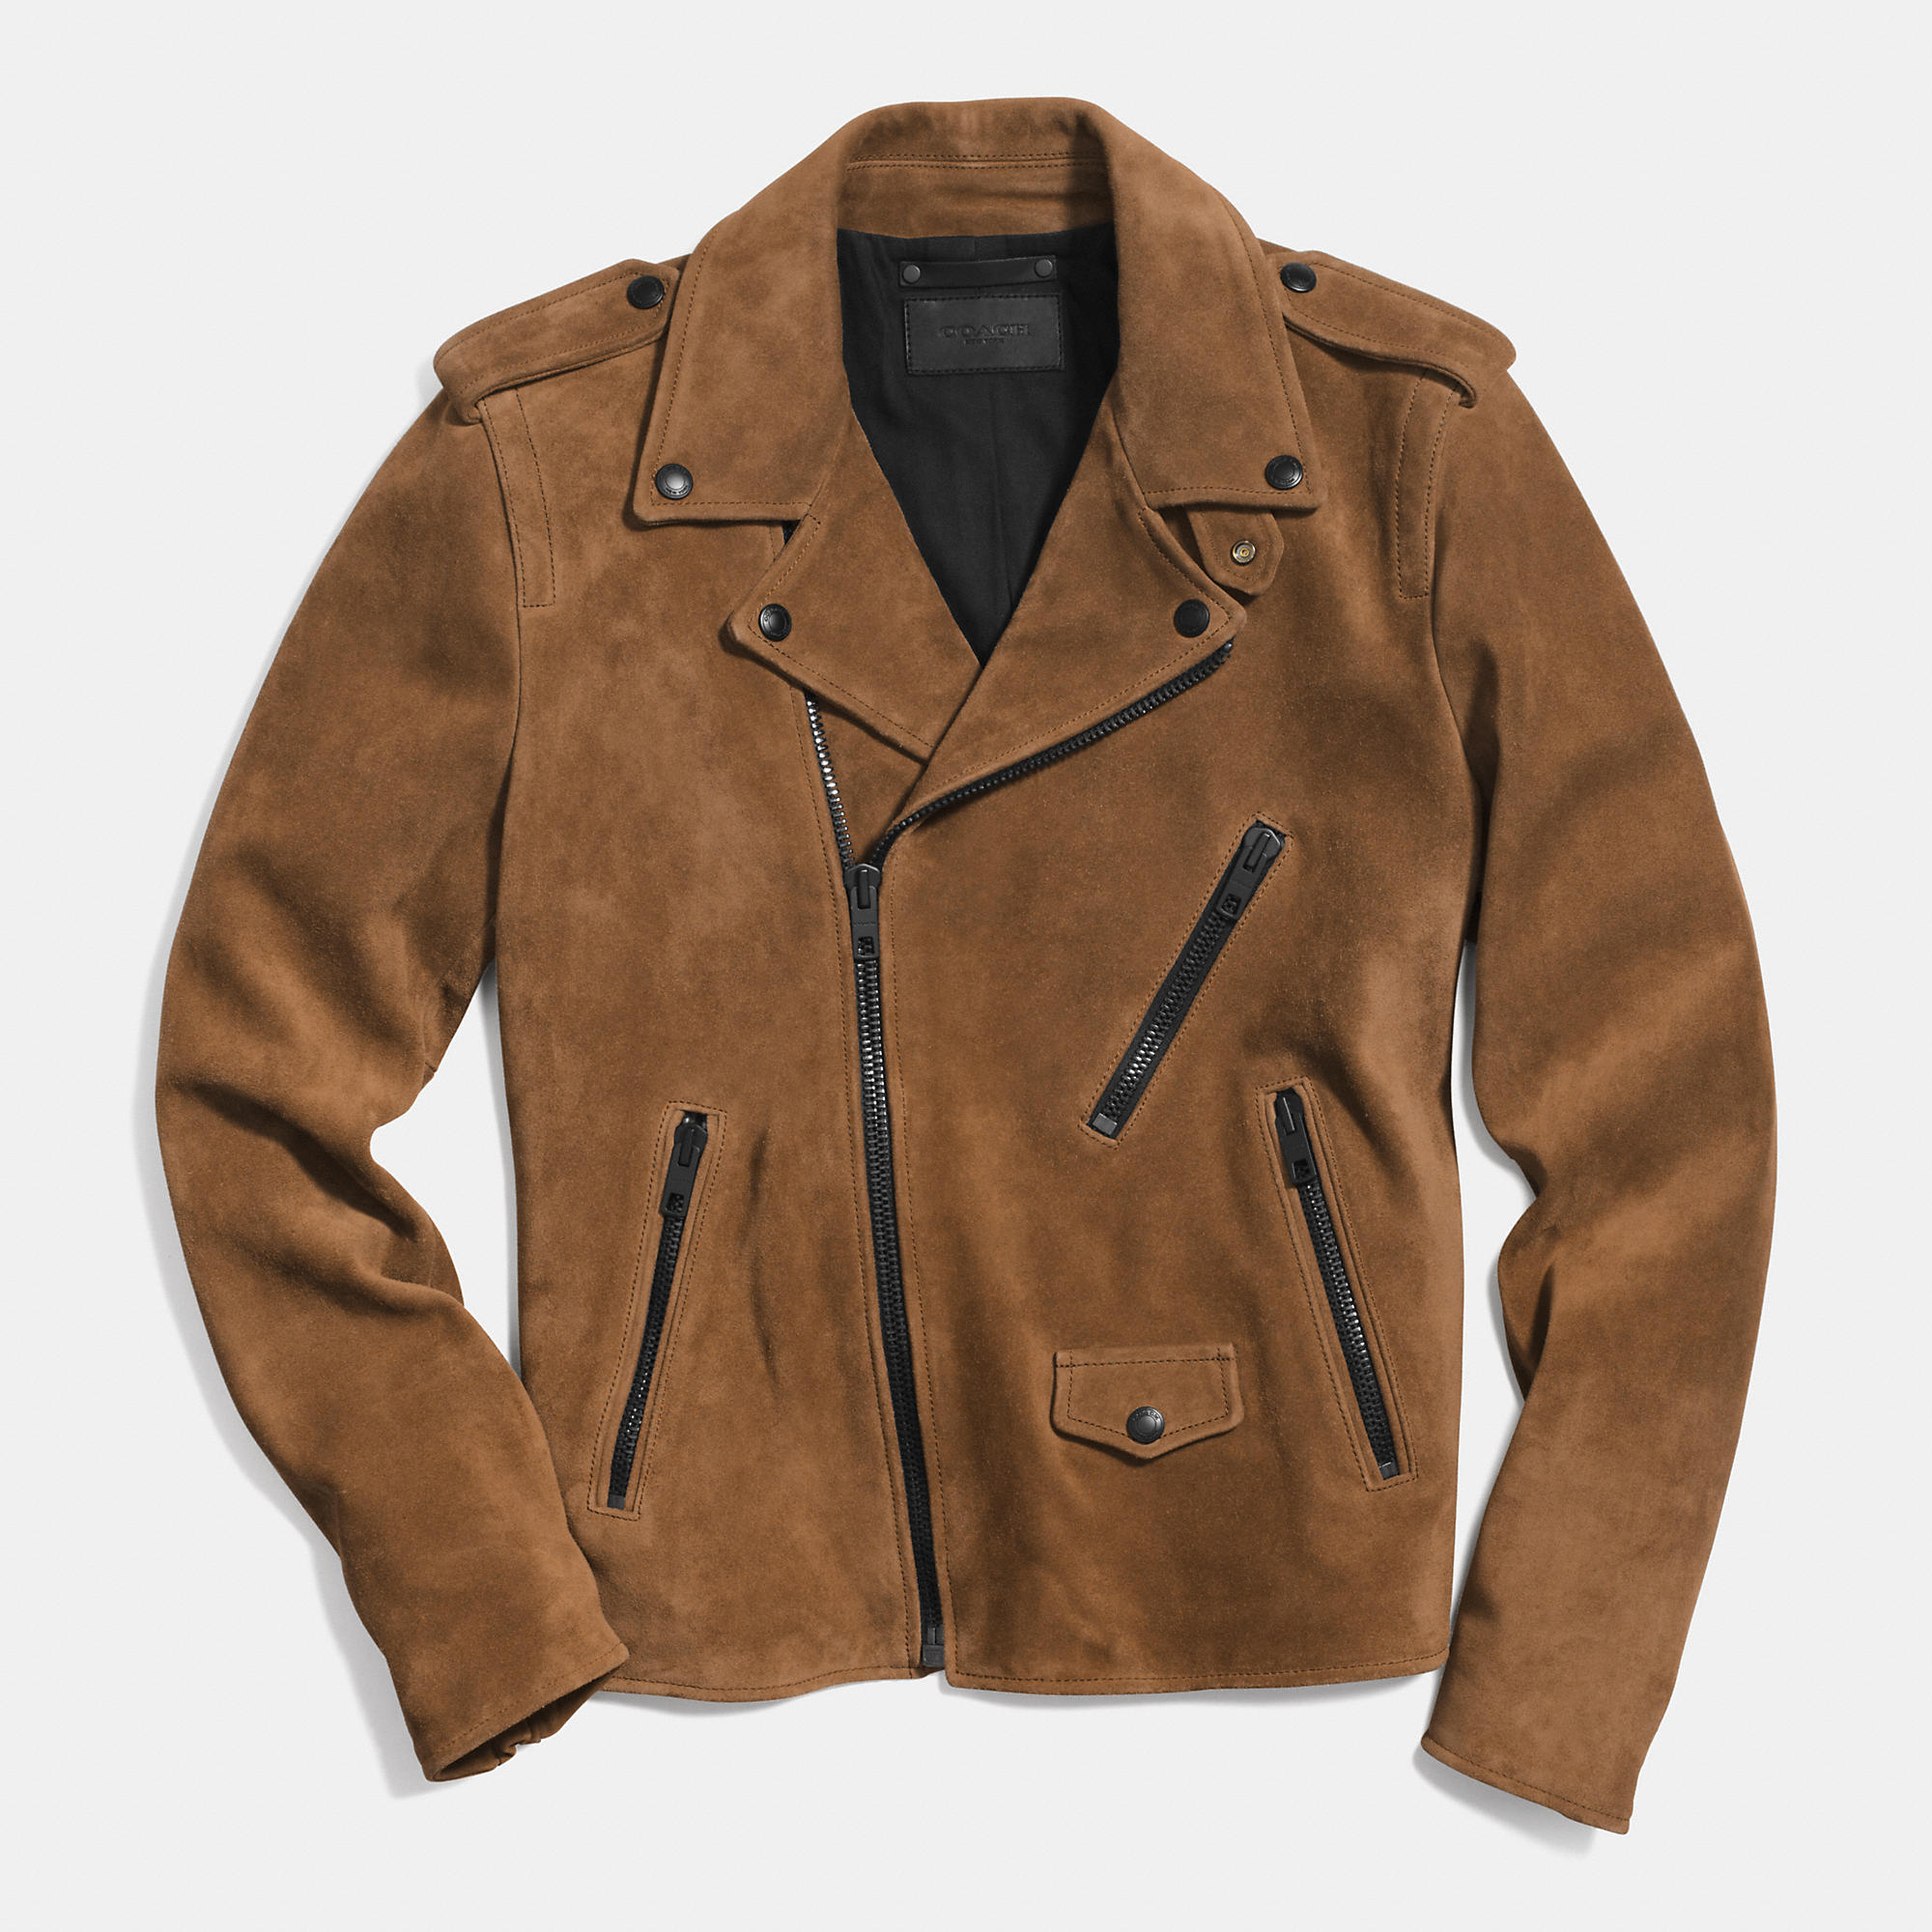 68394863d2c Lyst - COACH Suede Motorcycle Jacket in Brown for Men